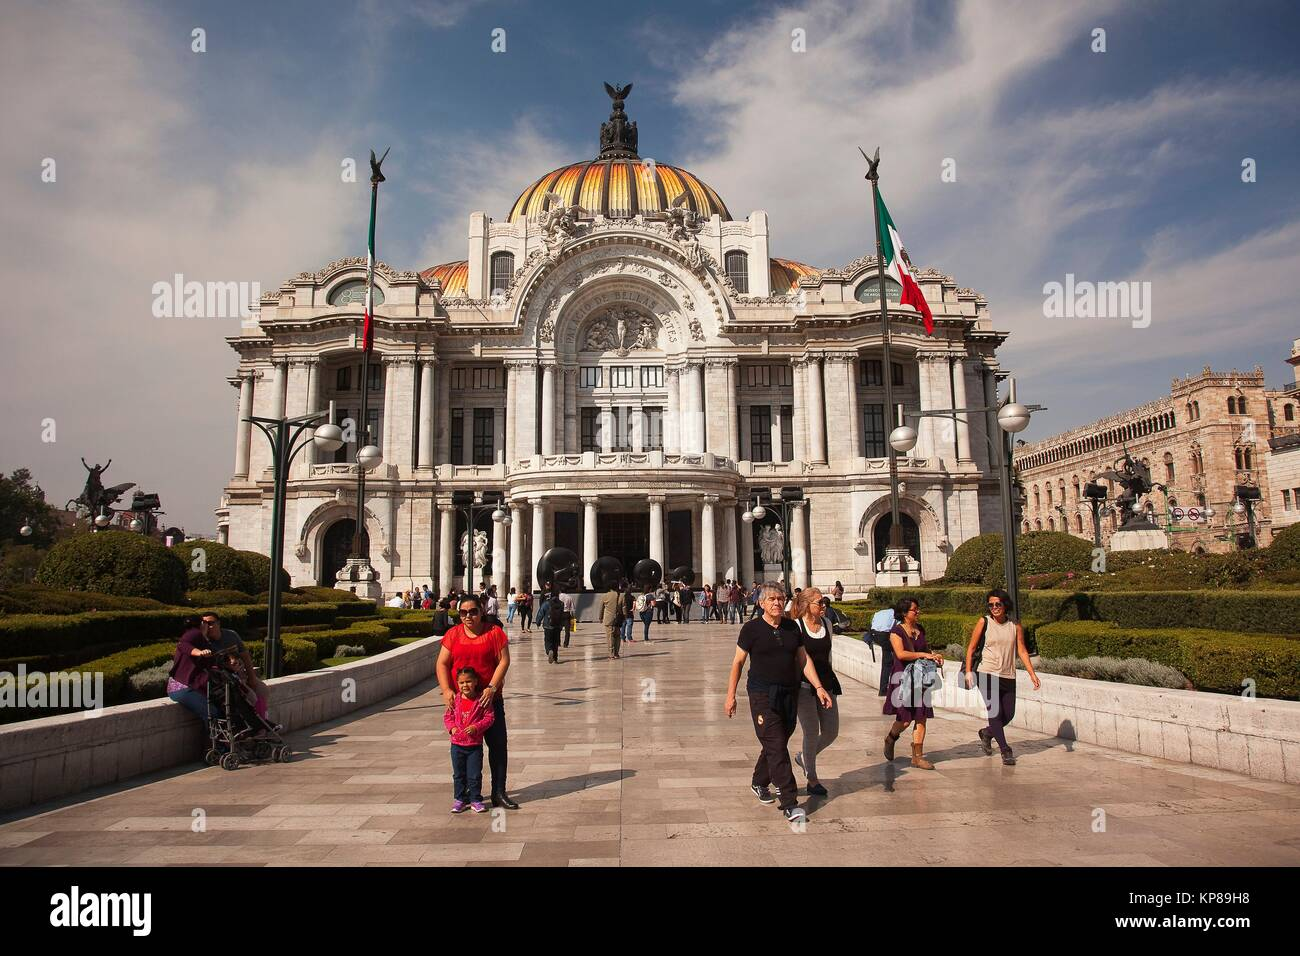 View to the Palacio de Bellas Artes-Fine Arts Museum in the city center, Mexico City, Mexico, Central America. Stock Photo